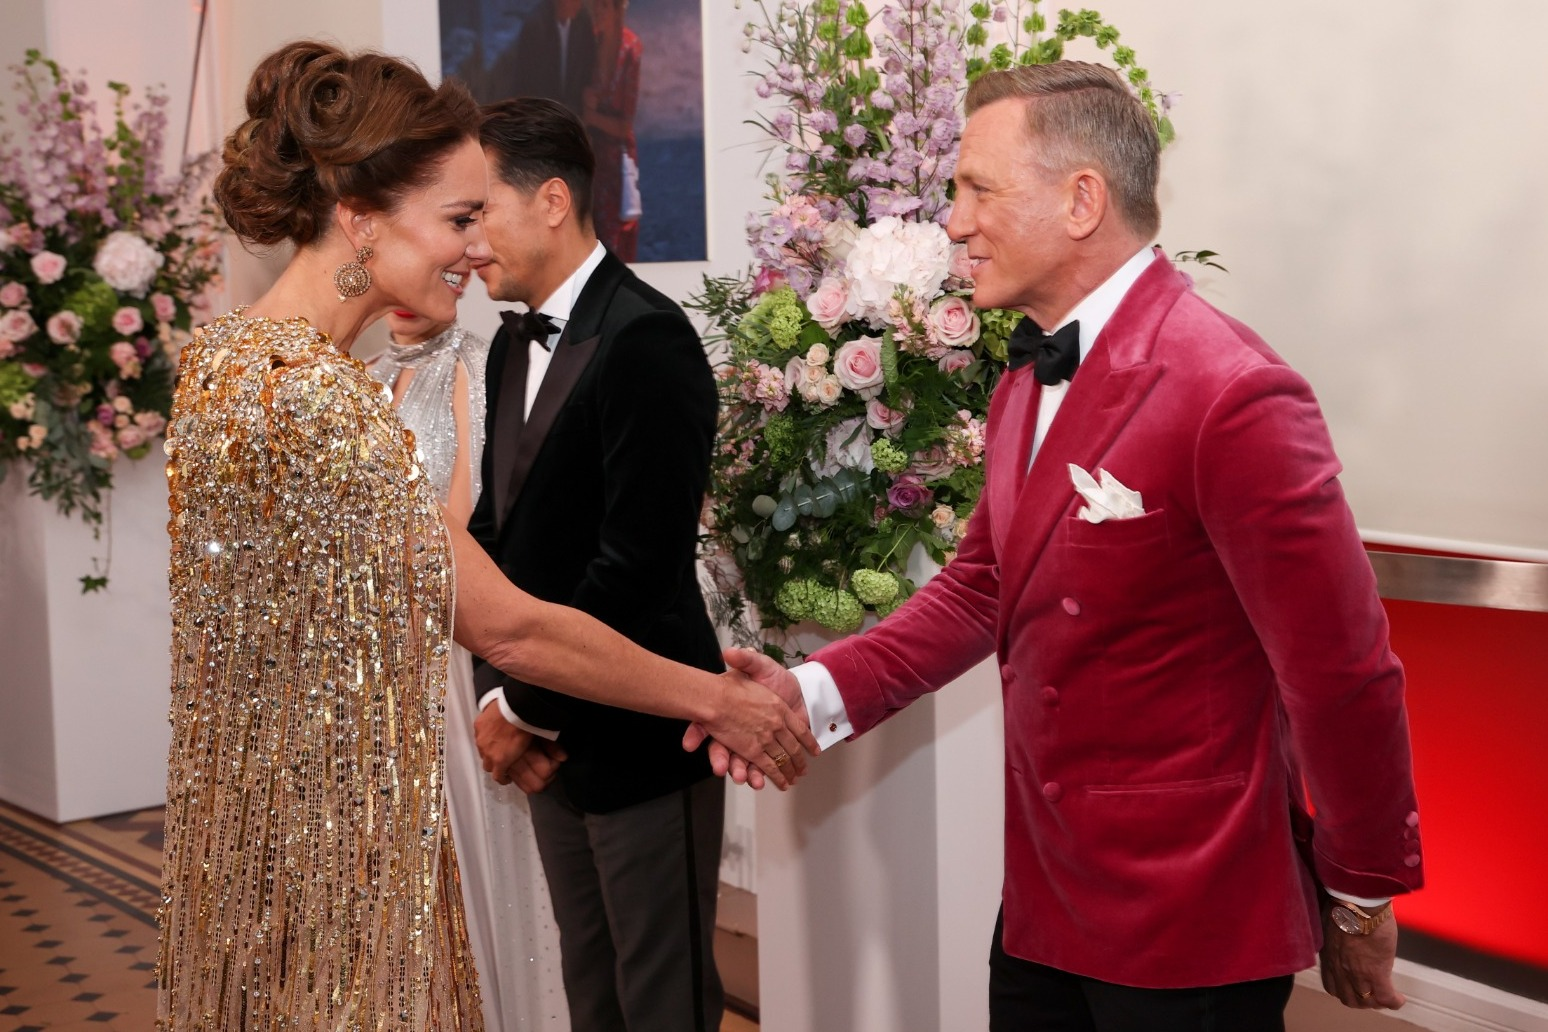 Daniel Craig gets royal send-off as No Time To Die premiere brings out the stars